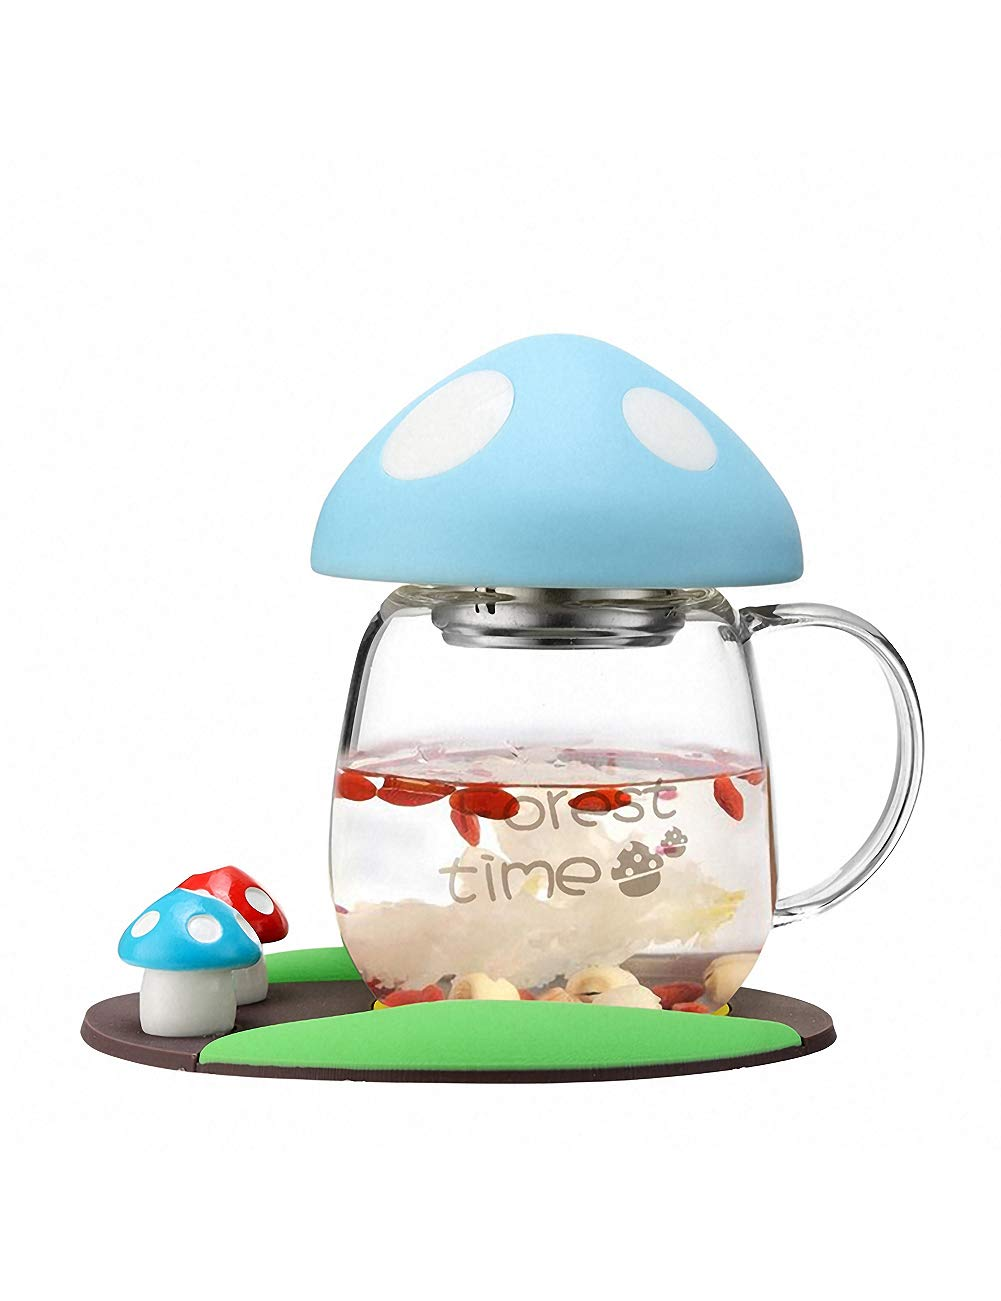 BZY1 Tea Mug Glass Cup With Strainer & Lid Portable Teacup Heat Resistant Mushroom Cup Design Cute and Practical 280ML BLUE